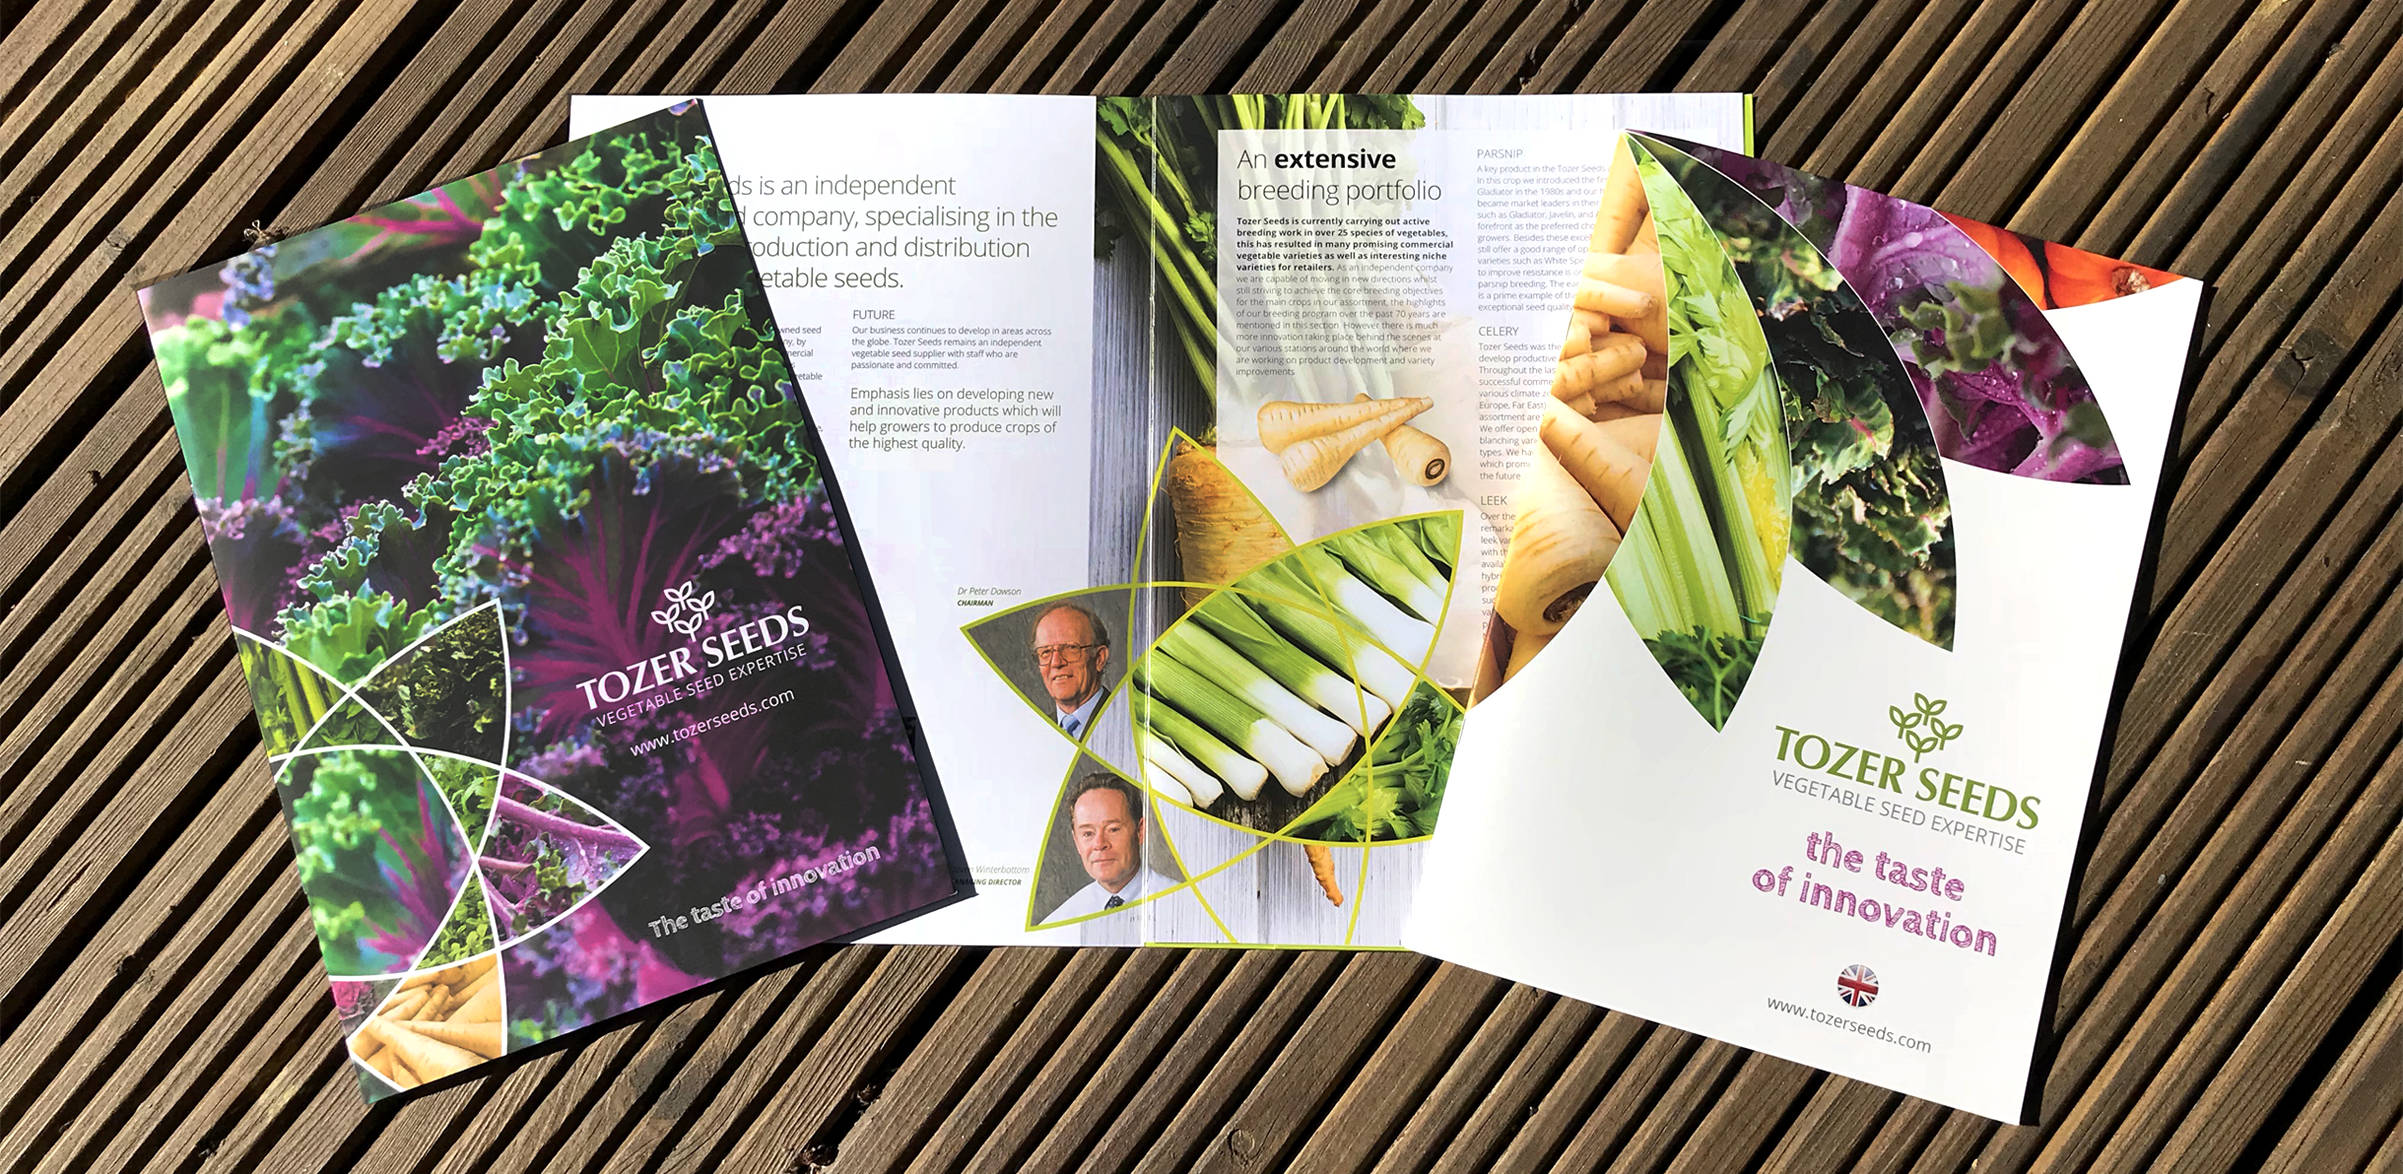 Tozer Seeds corporate branding literature